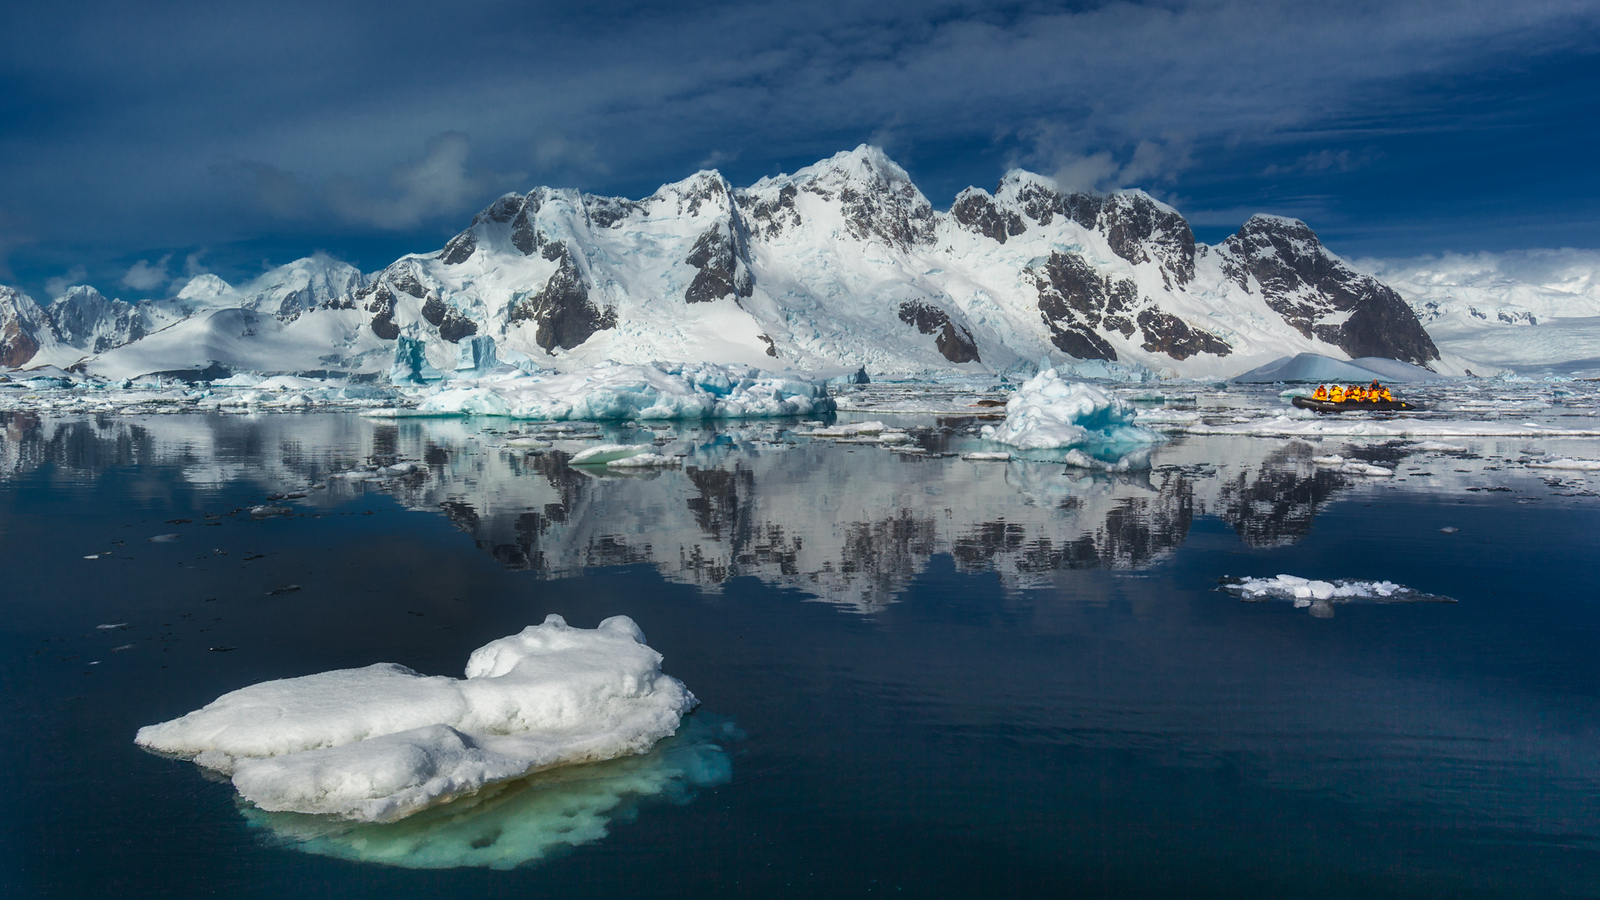 Antarctica Photography Tips